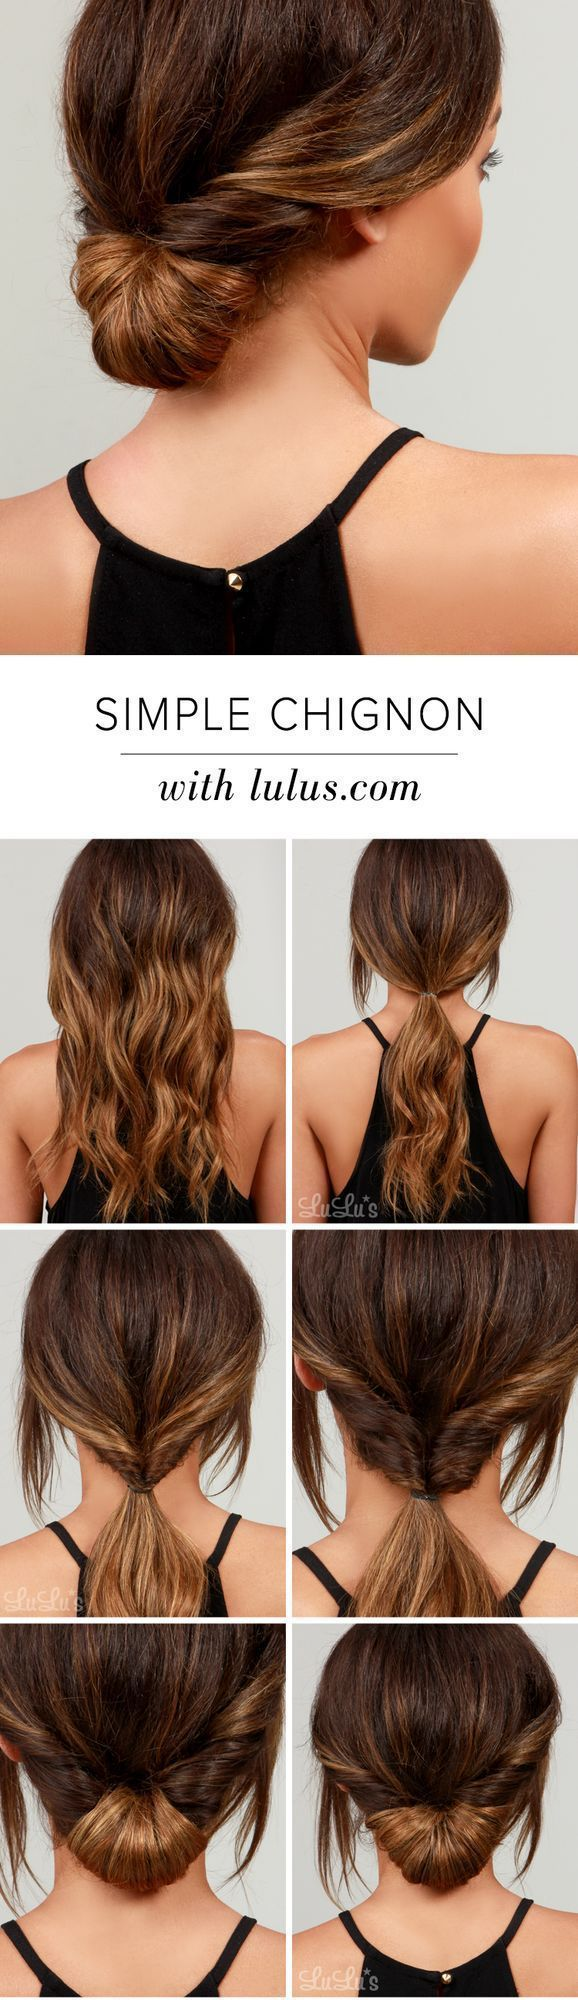 It's classic, chic and easy to hold, that's all our Chignon Hair Tutorial too